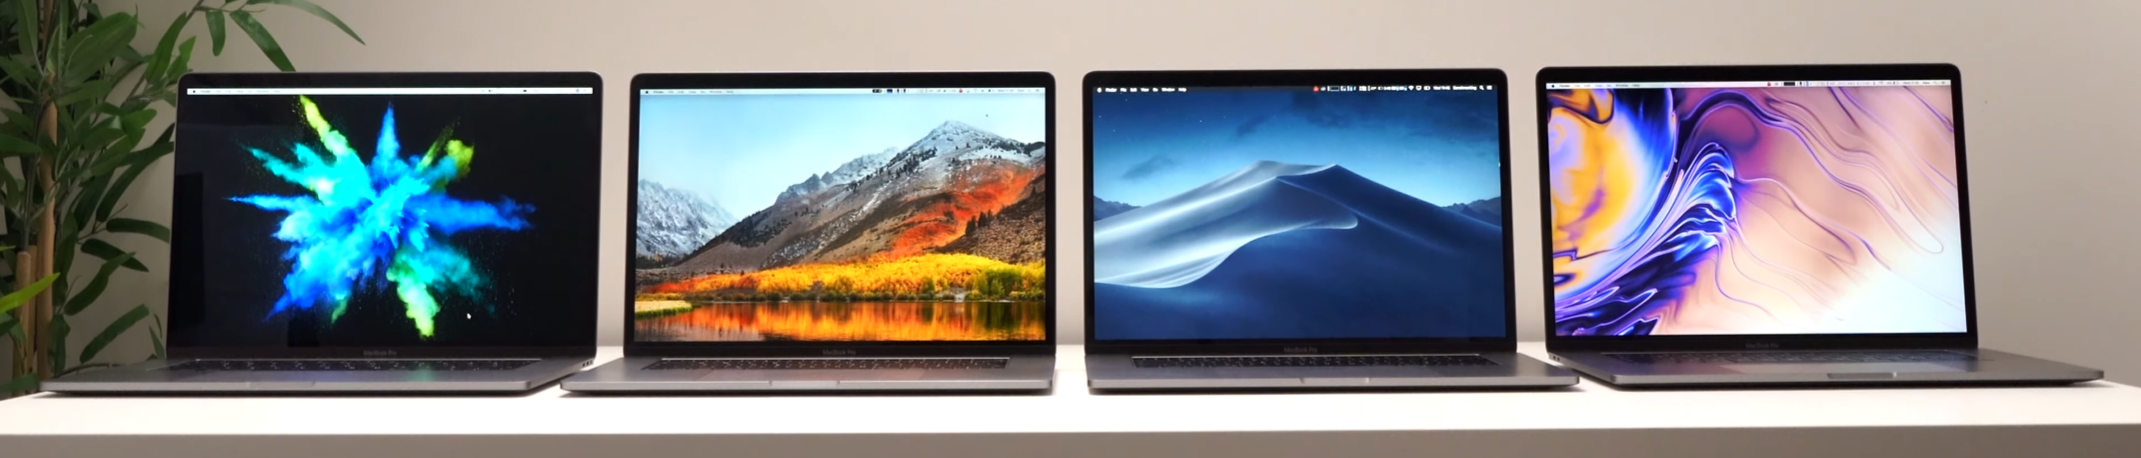 The 2019 Model hasn't changed in design since 2016